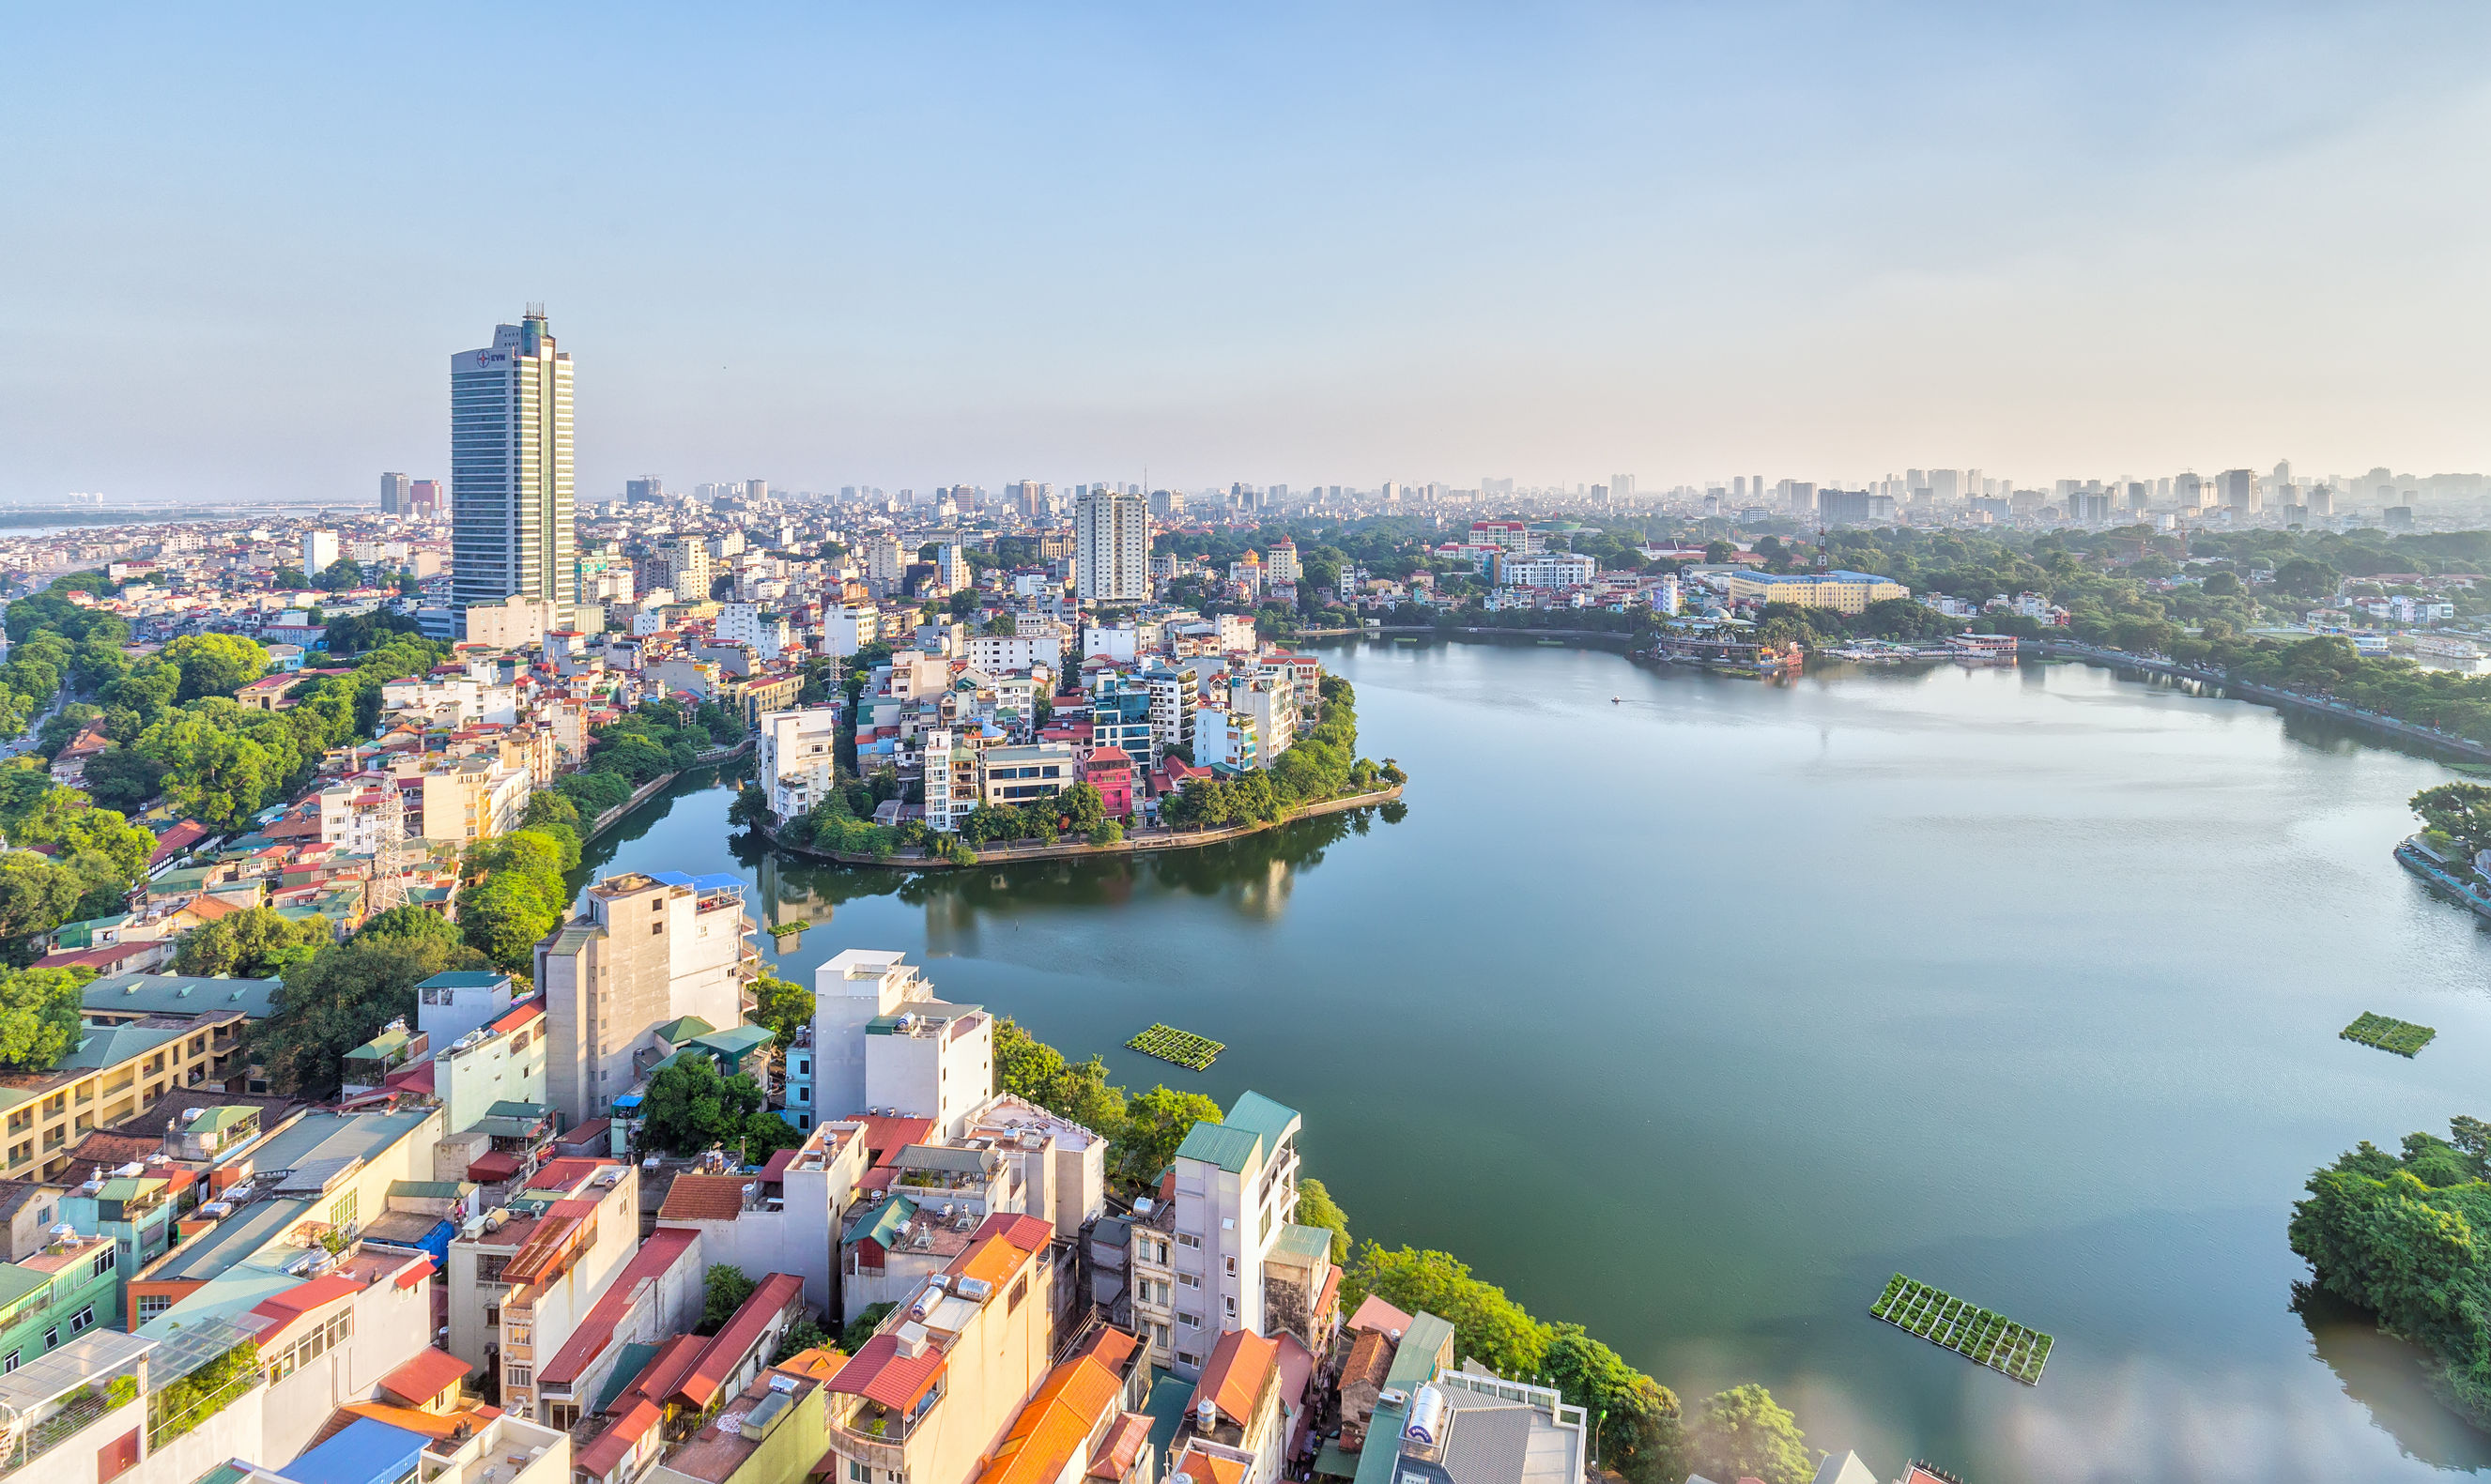 Software outsourcing in Vietnam - Hanoi City